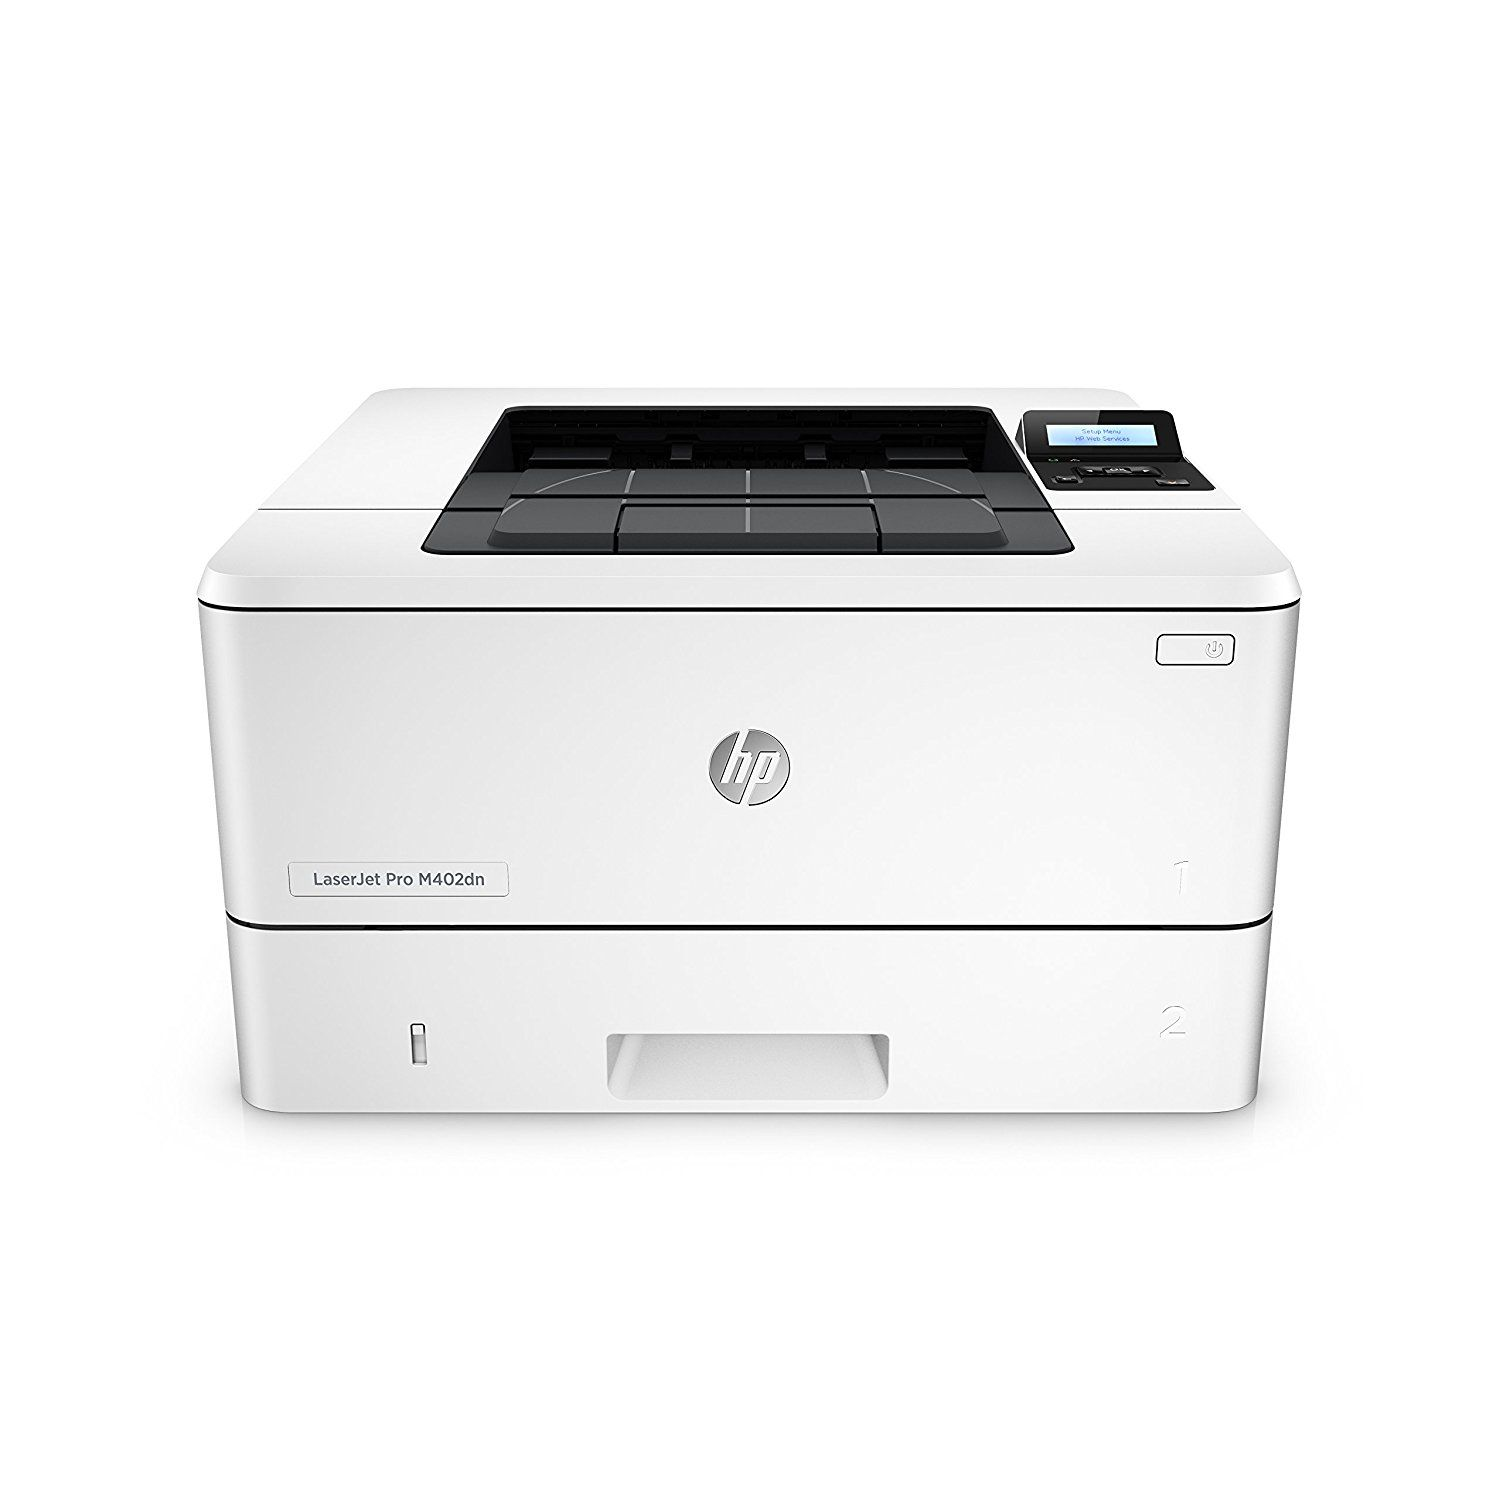 Hp Laserjet Pro M402dn Laser Printer With Built In Ethernet Double Sided Printing Amazon Dash Replenishment Ready C5f94 Laser Printer Printer Best Printers